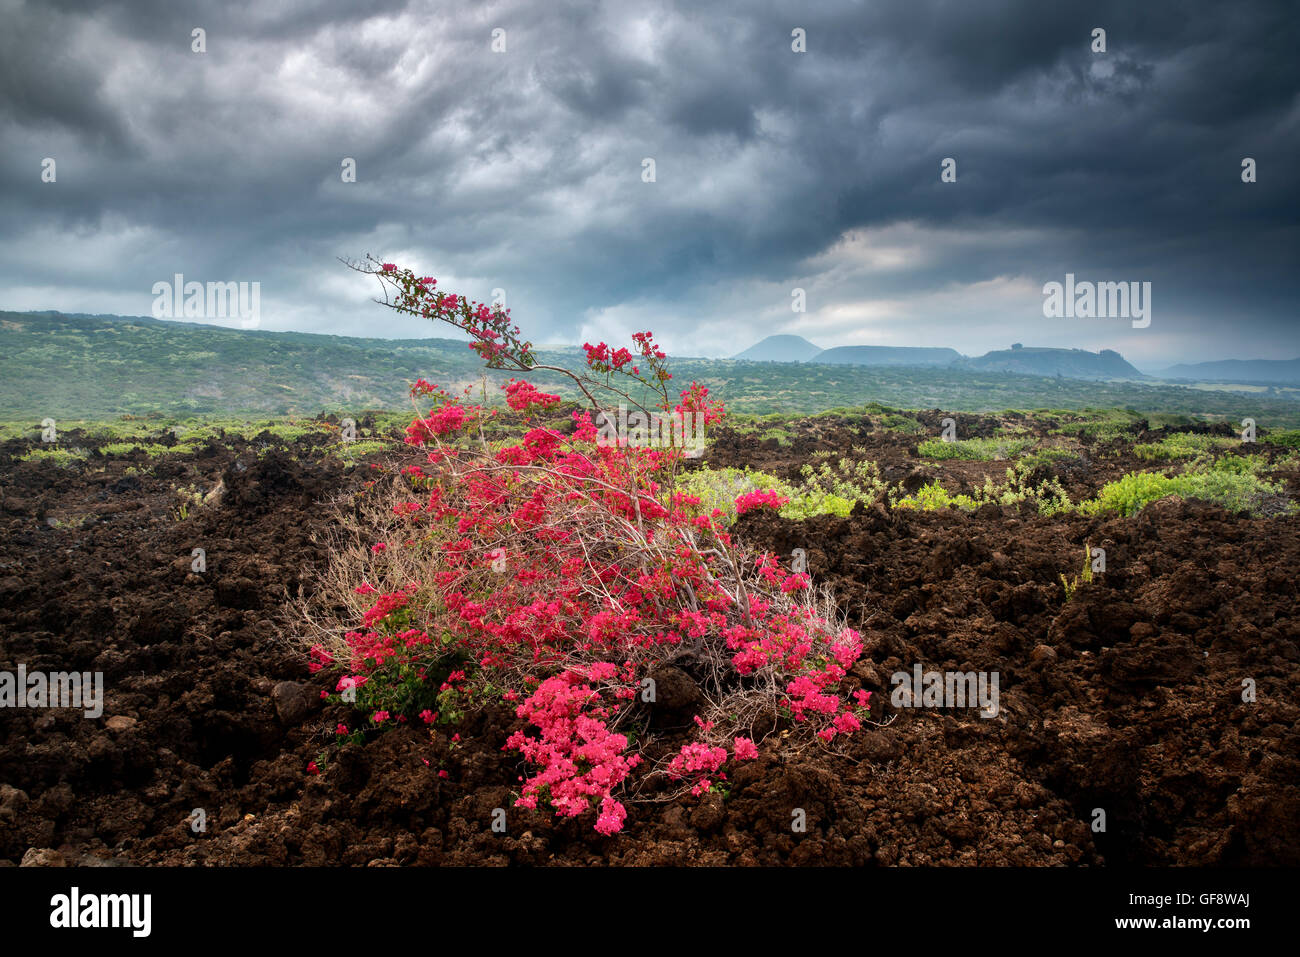 Bougainvillea in AA lava field, Hawaii Volcanoes National Park, Hawaii Island Stock Photo